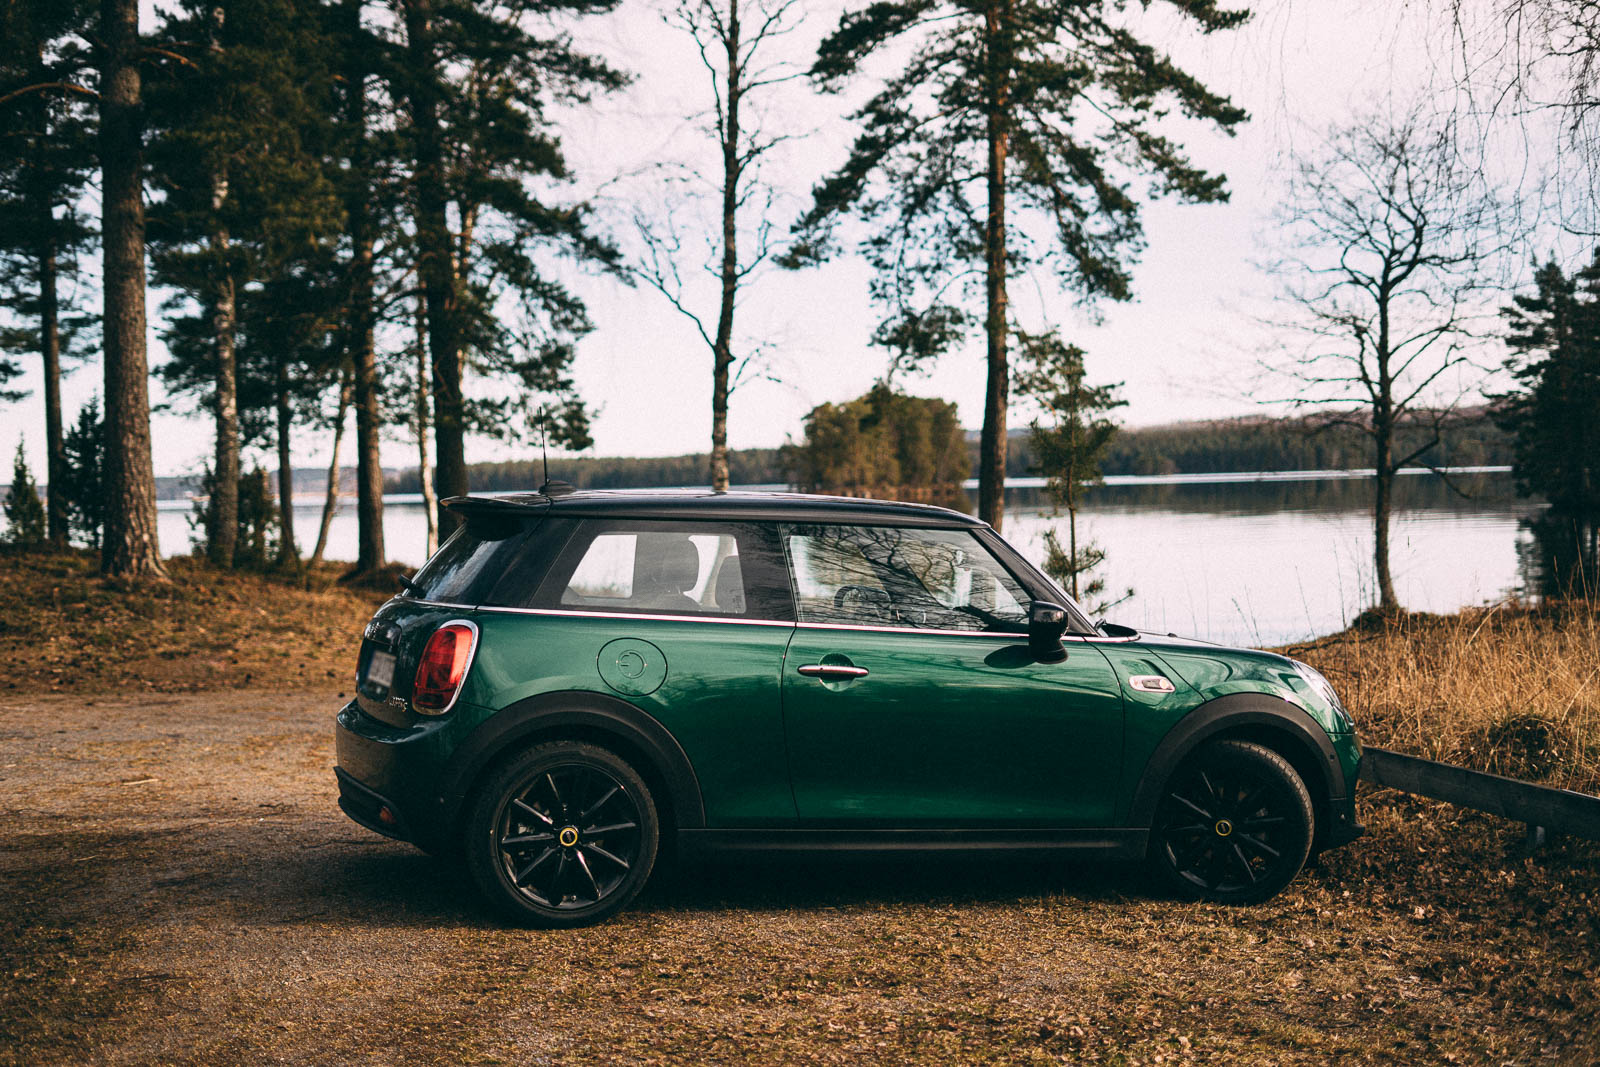 The profile of a green, three-door car. It stands parked outdoors; there's a lake in the background, and it looks like autumn.